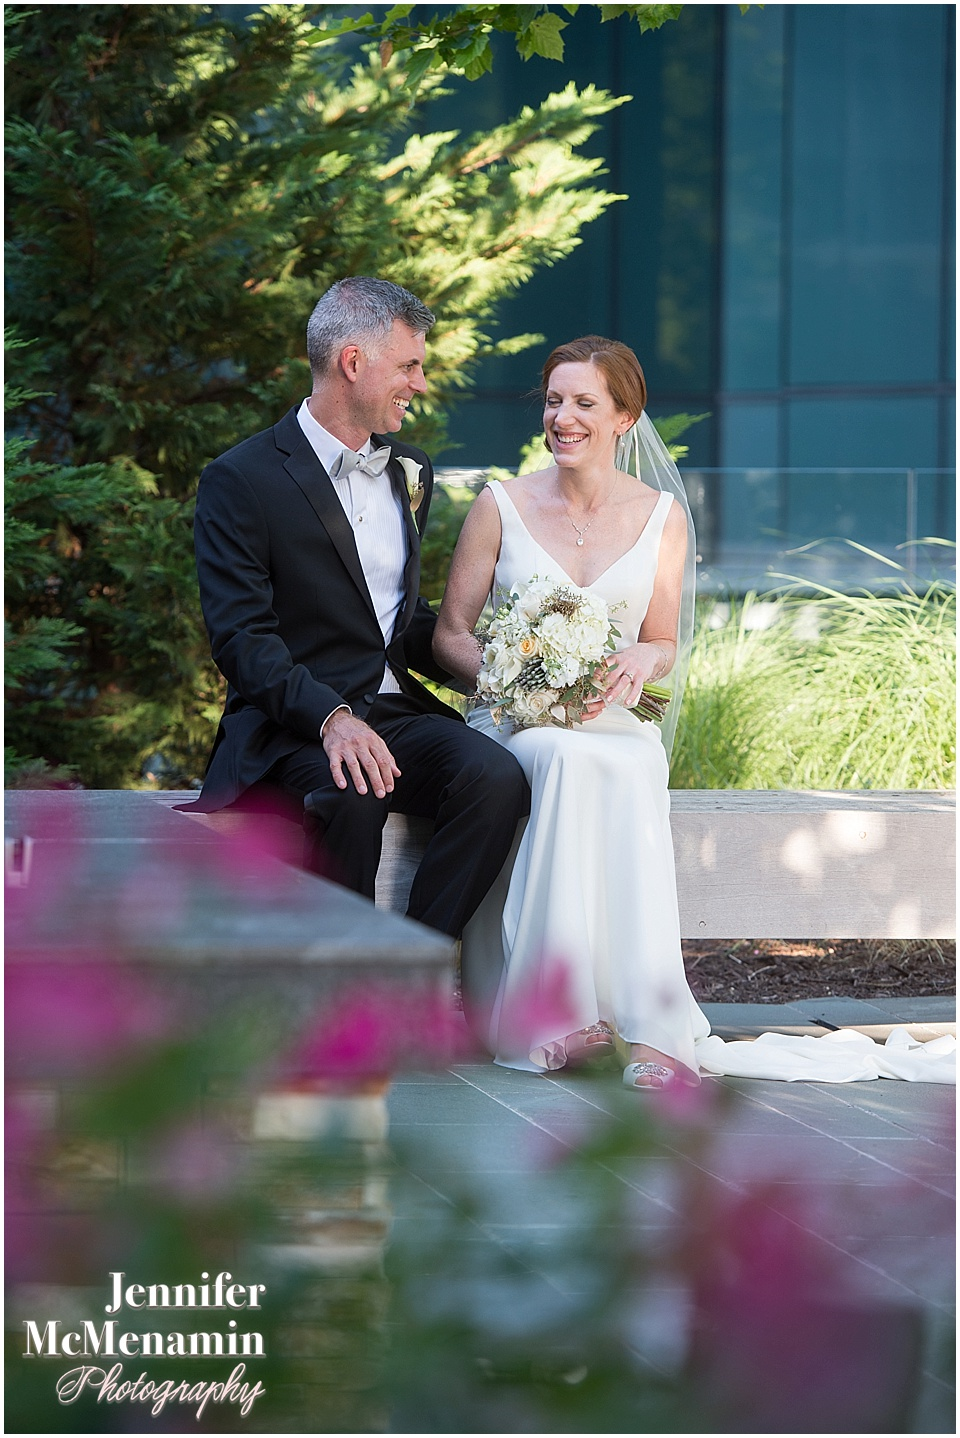 042-Four-Seasons-Baltimore-wedding-Jennifer-McMenamin-Photography